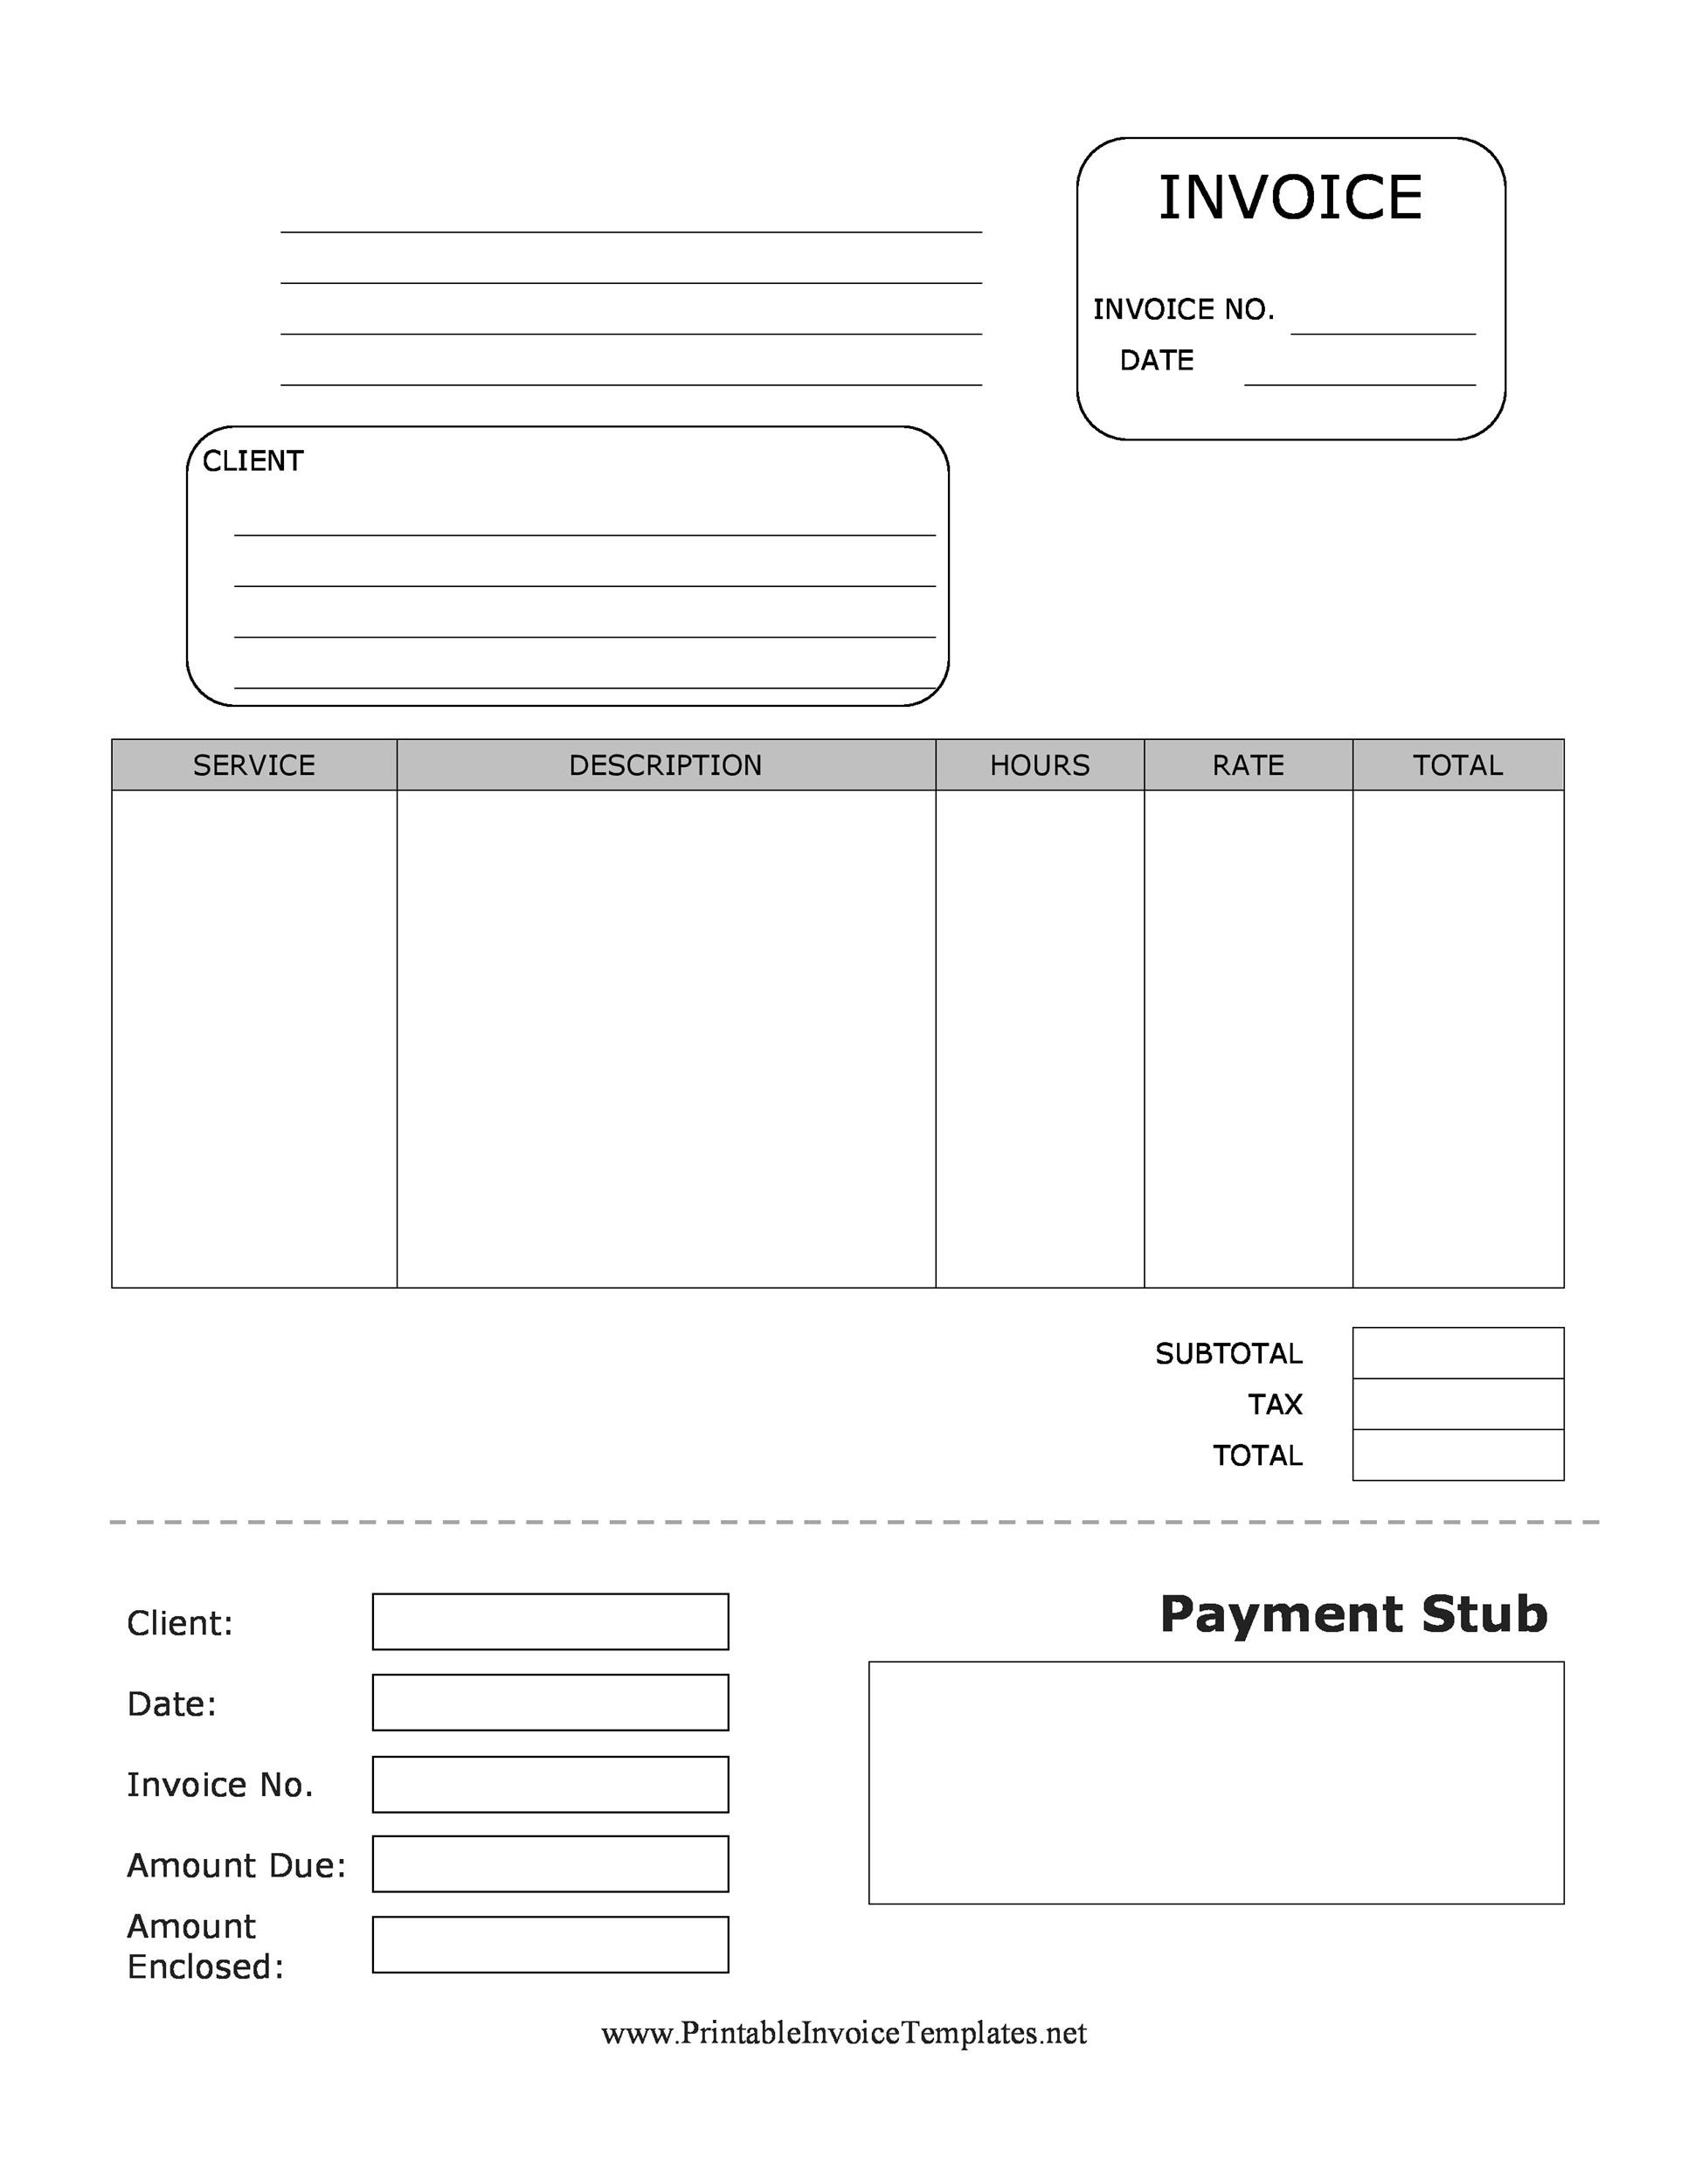 pay stub template word 25 Great Pay Stub / Paycheck Stub Templates